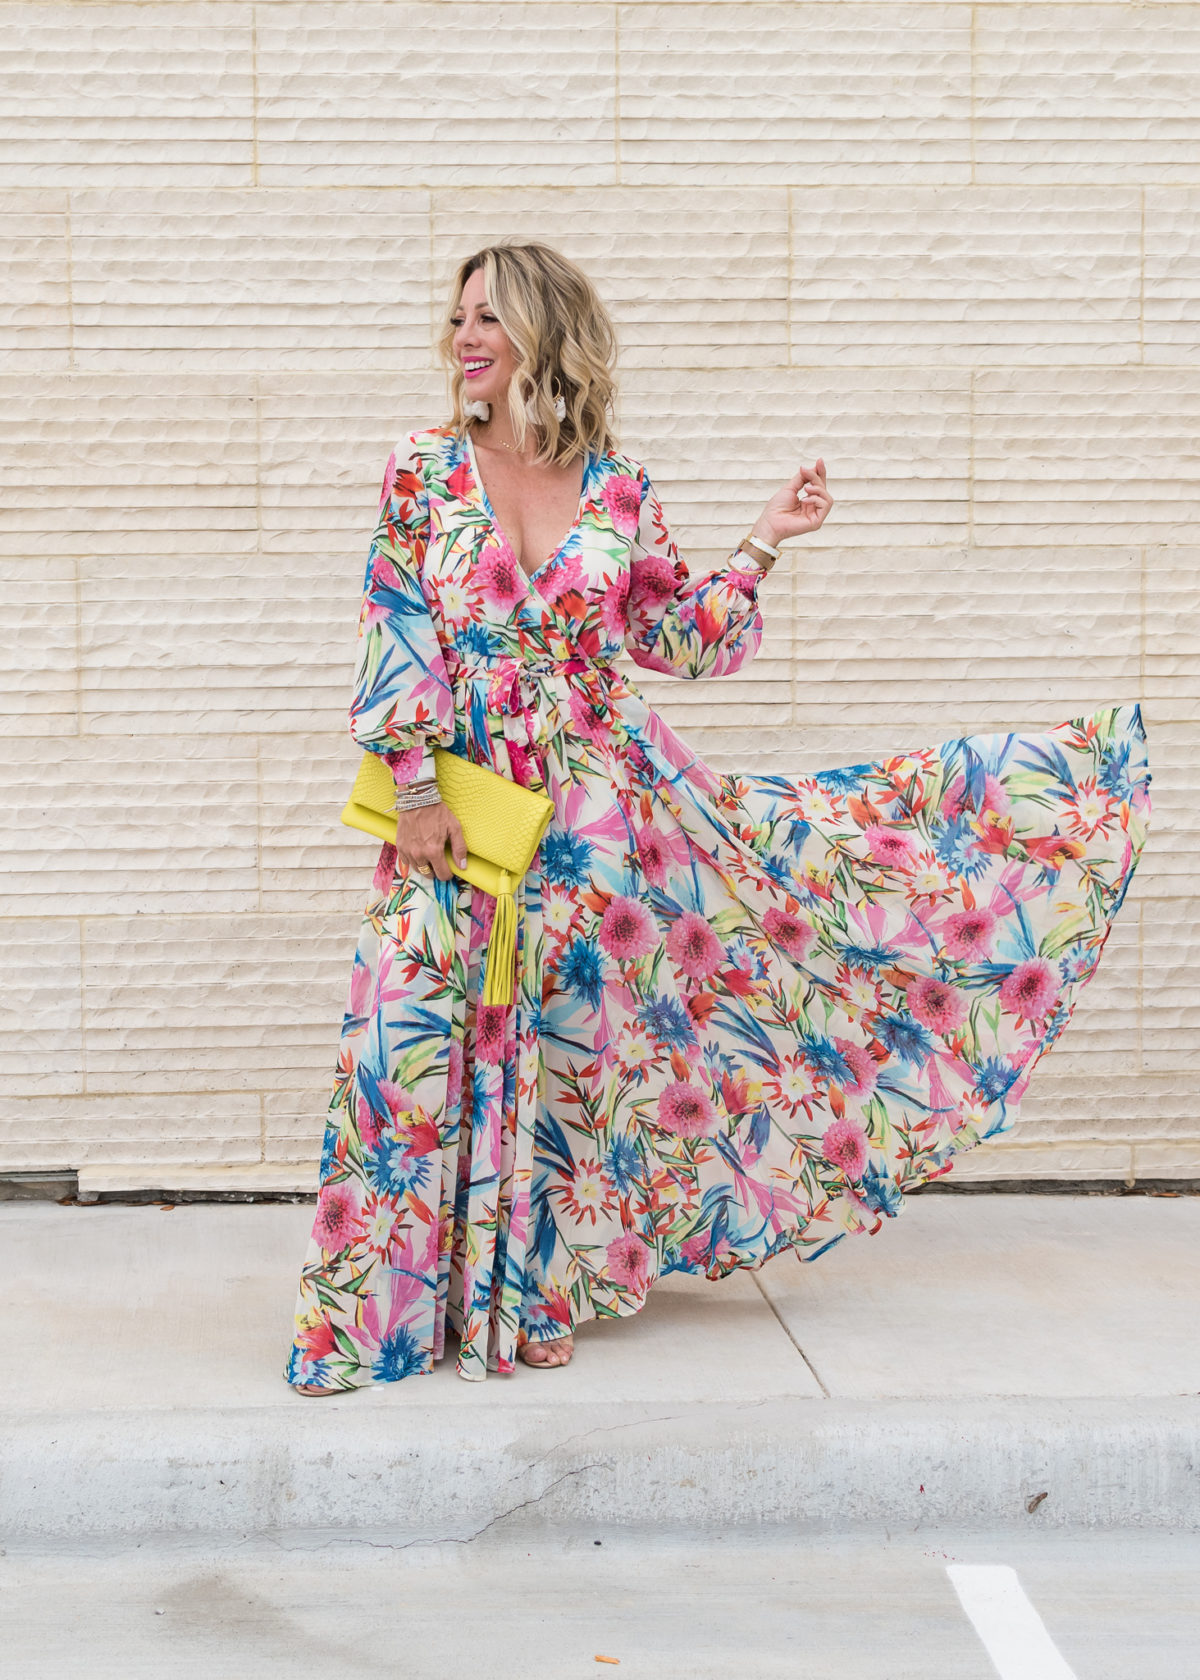 Amazon Fashion Prime Day Haul - Floral Maxi Dress